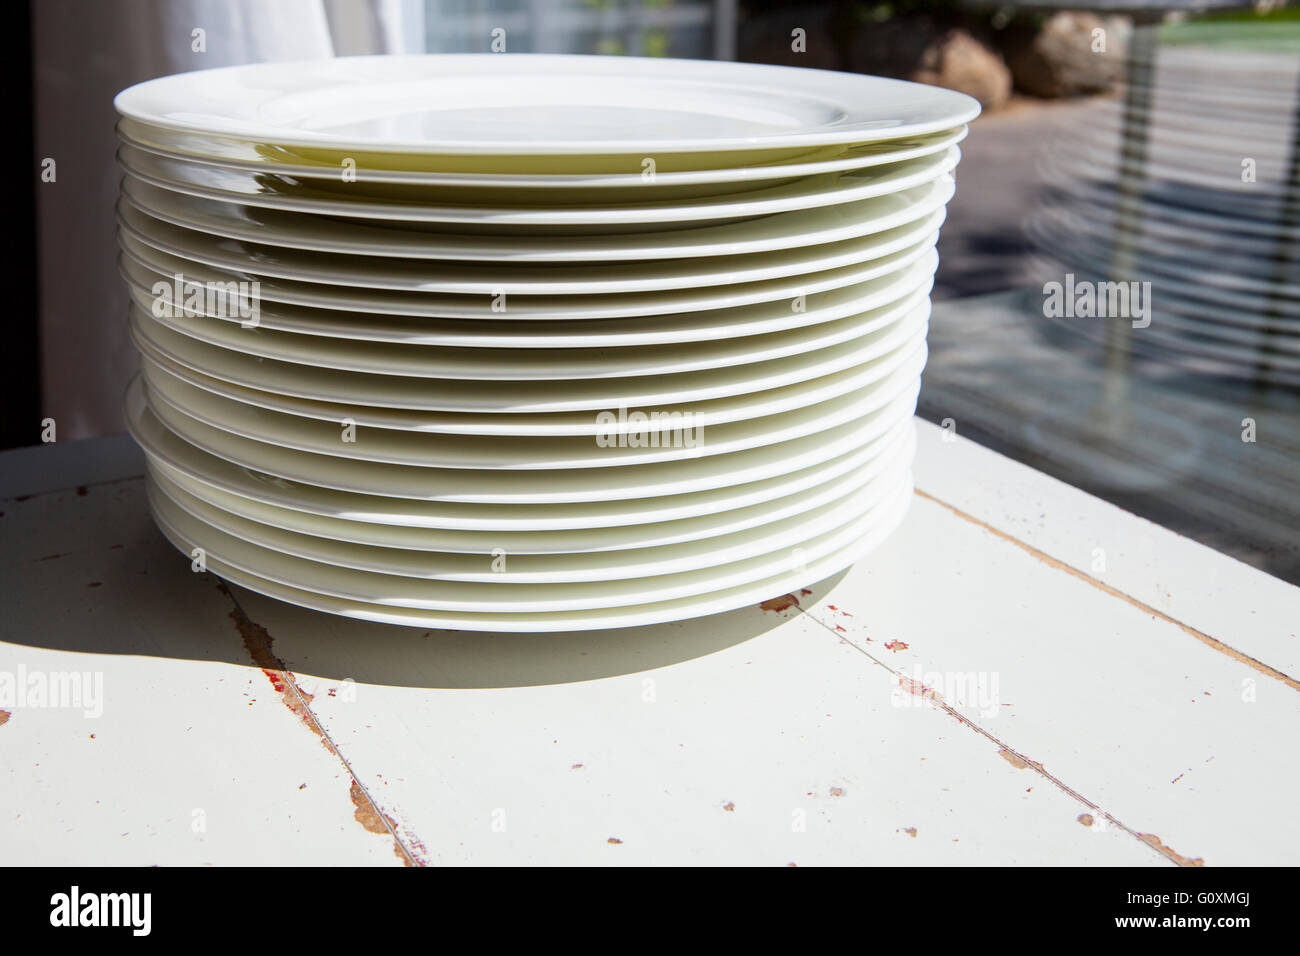 White plates piled on vintage table close to window - Stock Image